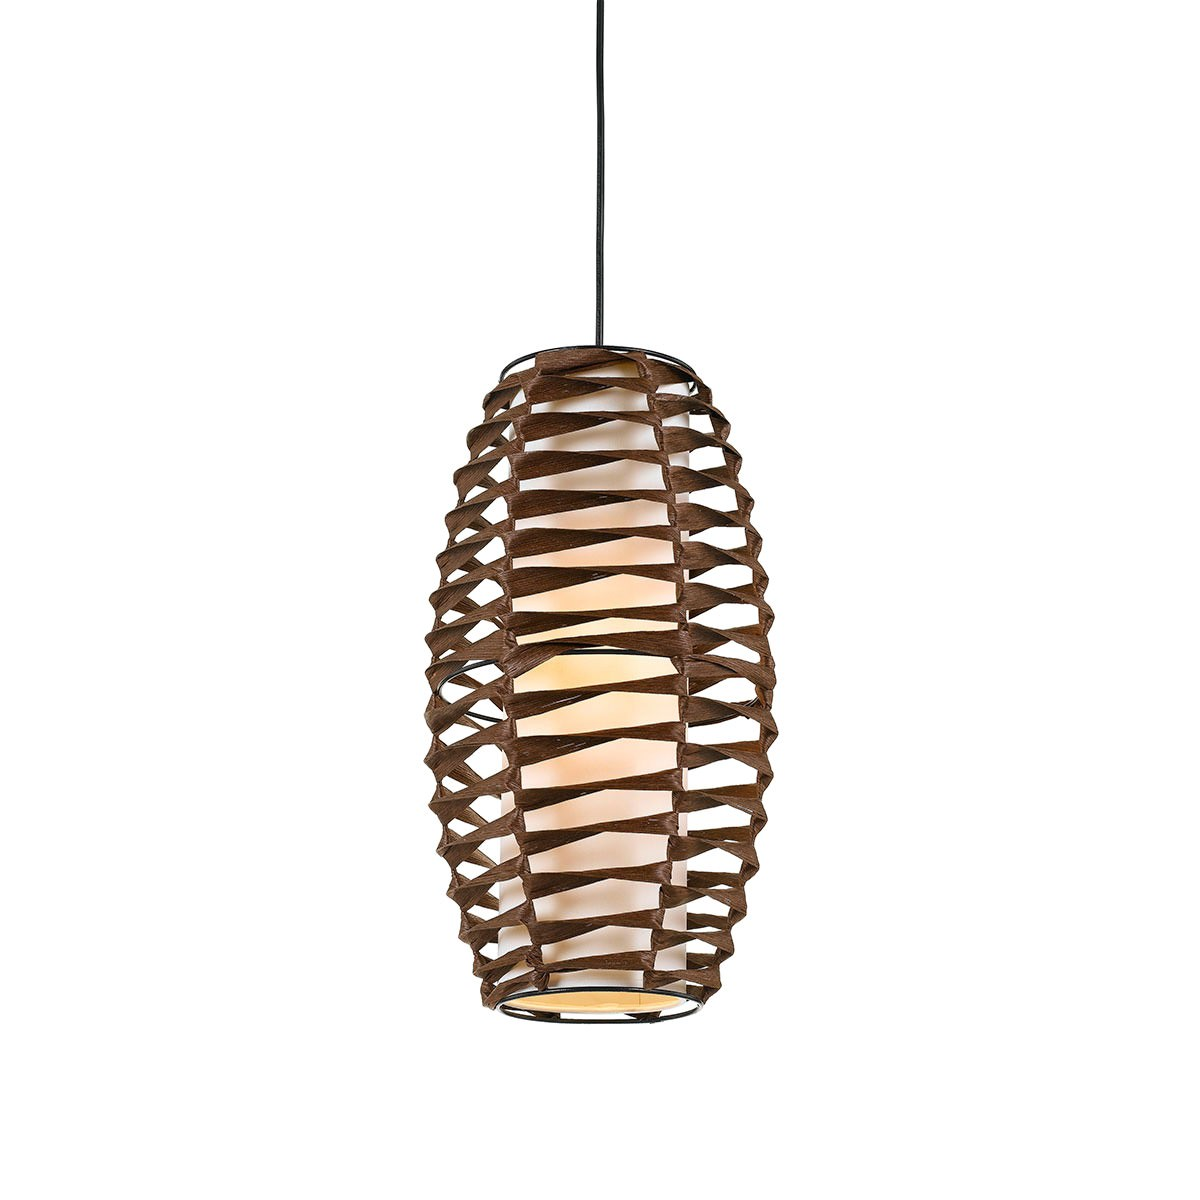 Tribe Woven Paper Prolate Spheroid Pendant Light, Small, Brown